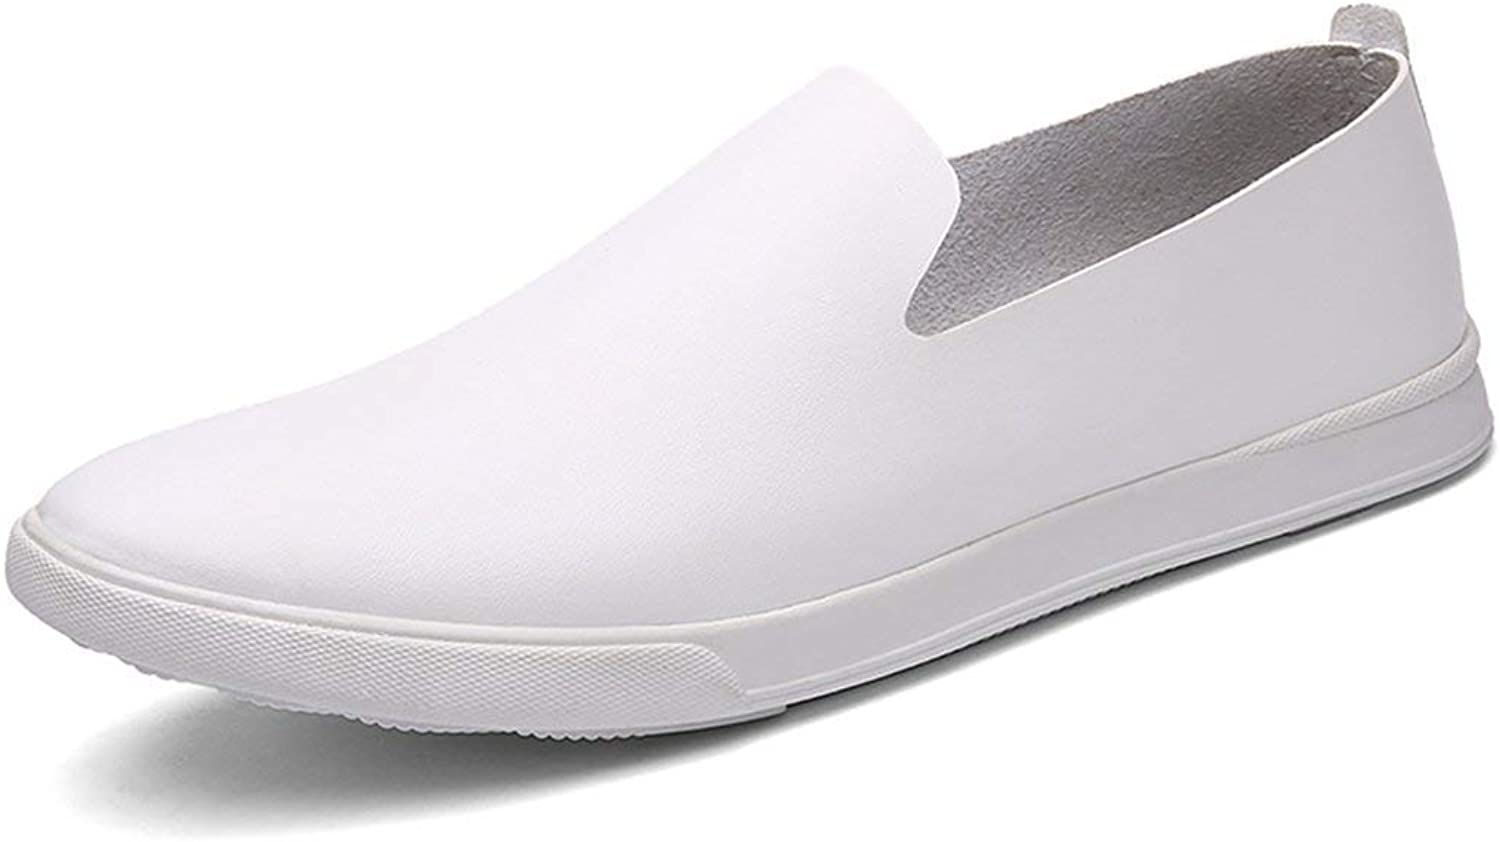 ZHRUI Boy's Men's Rubber Sole Spring shoes Dress Loafers (color   White, Size   7 UK)